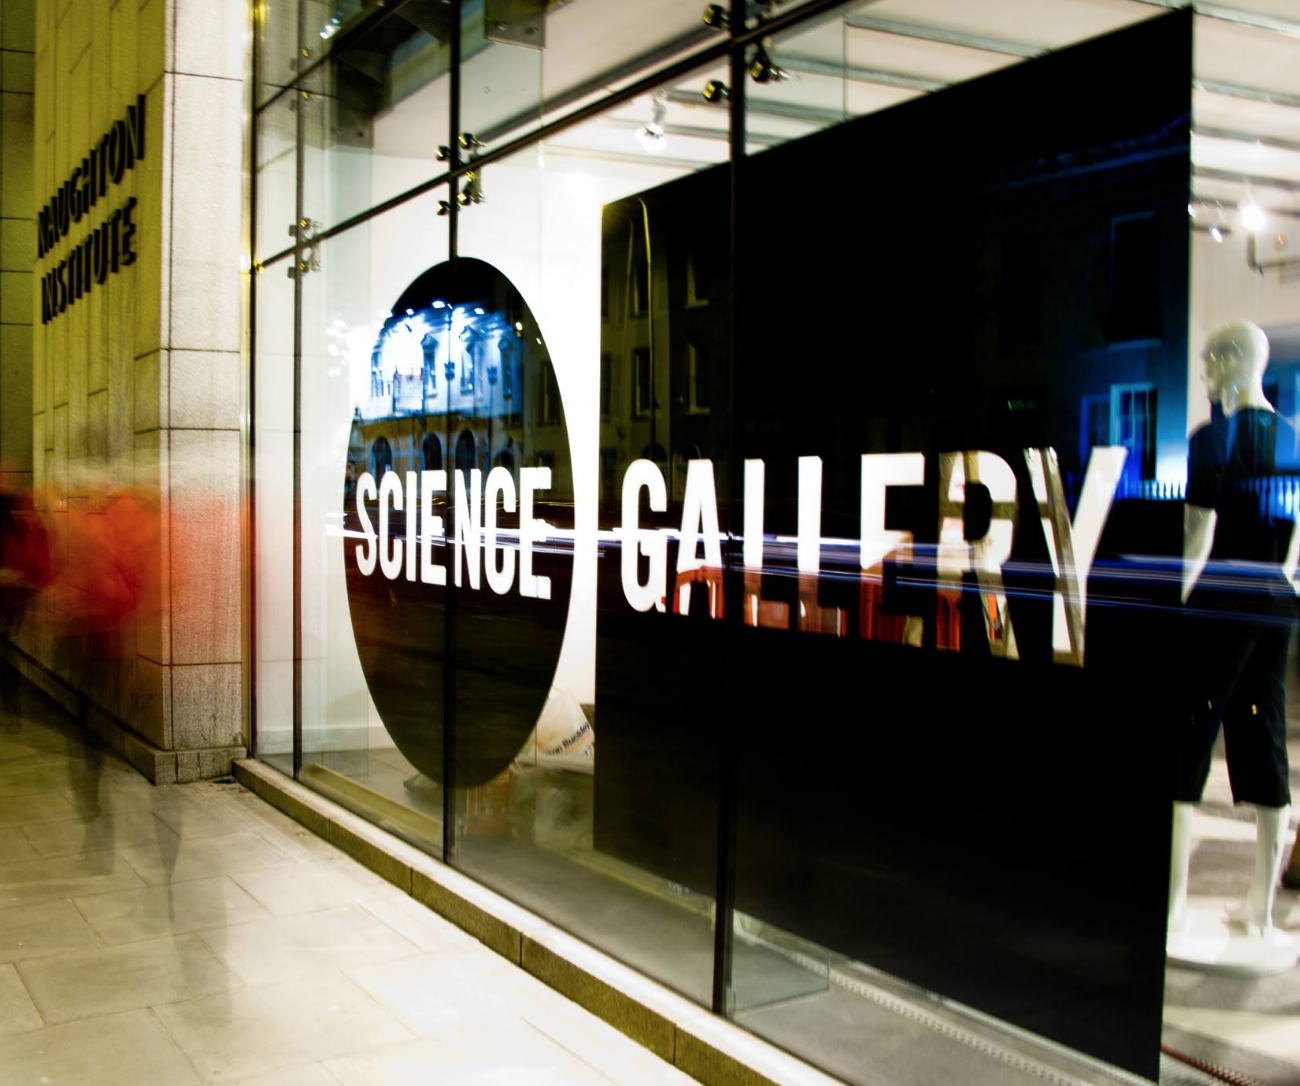 Science Gallery - YourDaysOut